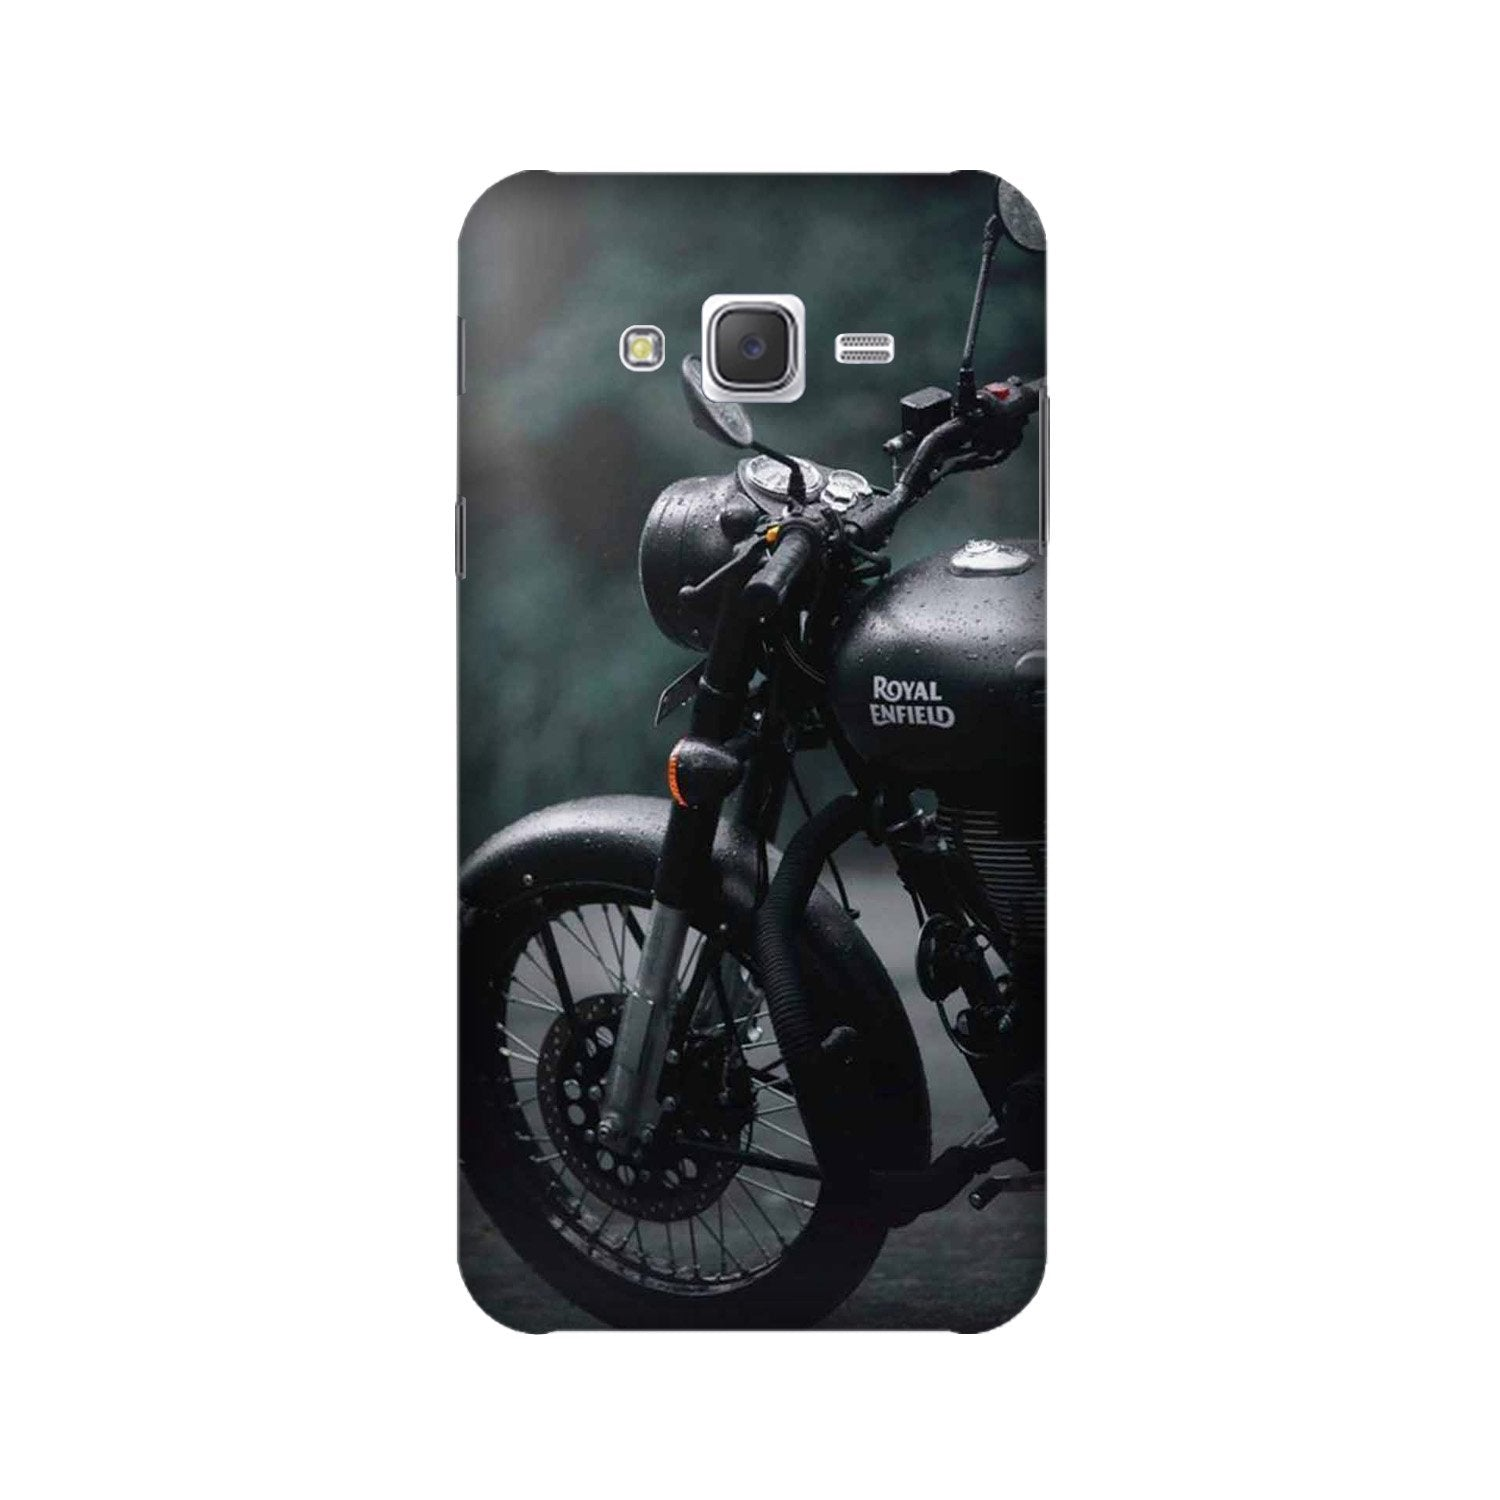 Royal Enfield Mobile Back Case for Galaxy A3 (2015) (Design - 380)